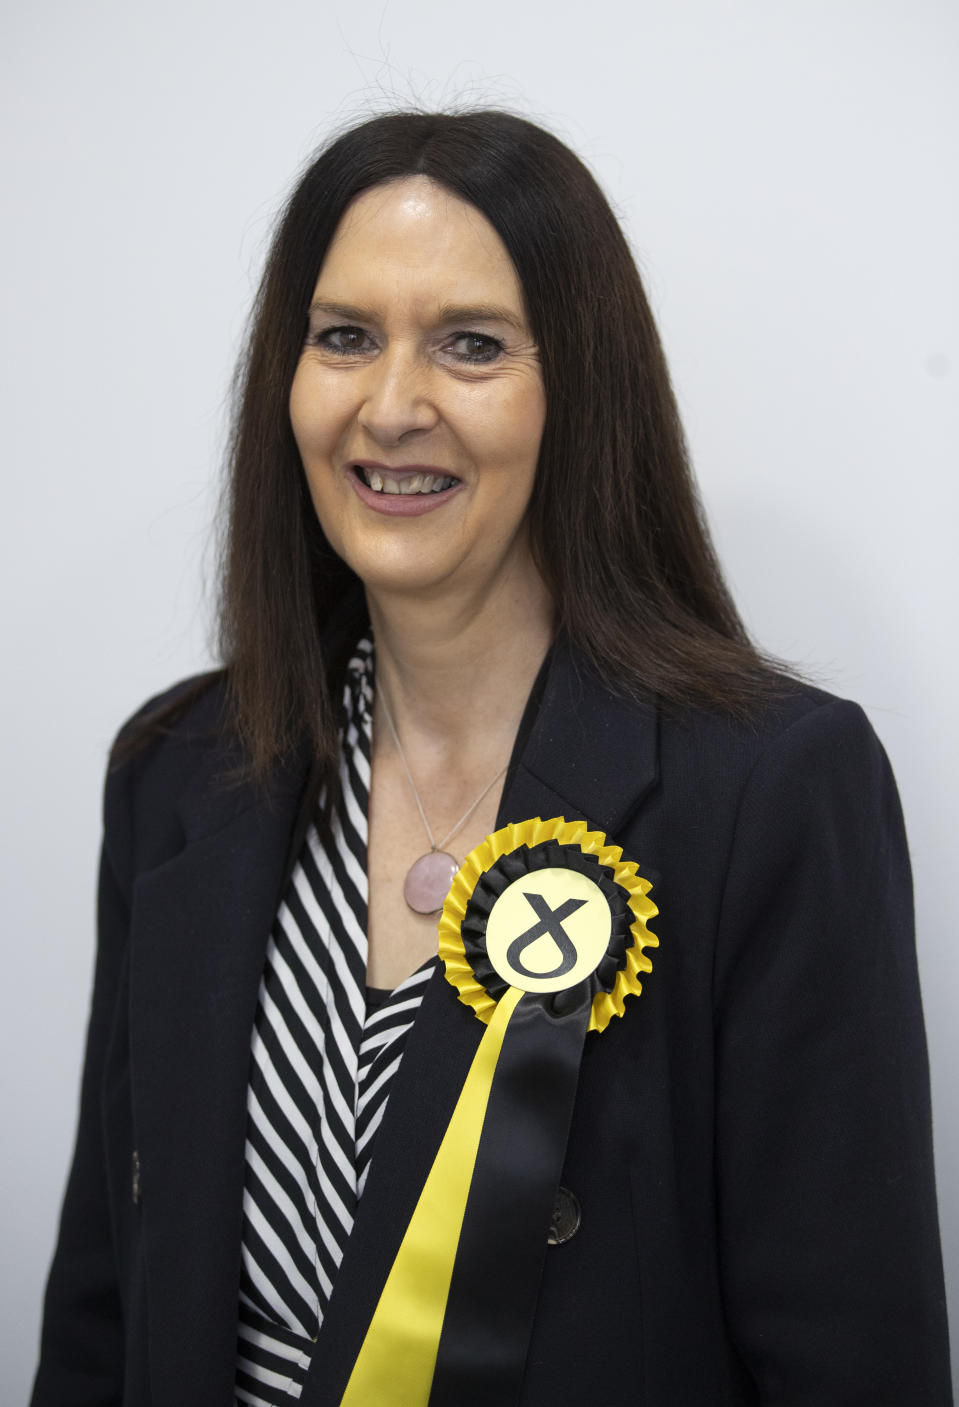 Margaret Ferrier, SNP candidate for Rutherglen. (Photo by Jane Barlow/PA Images via Getty Images)